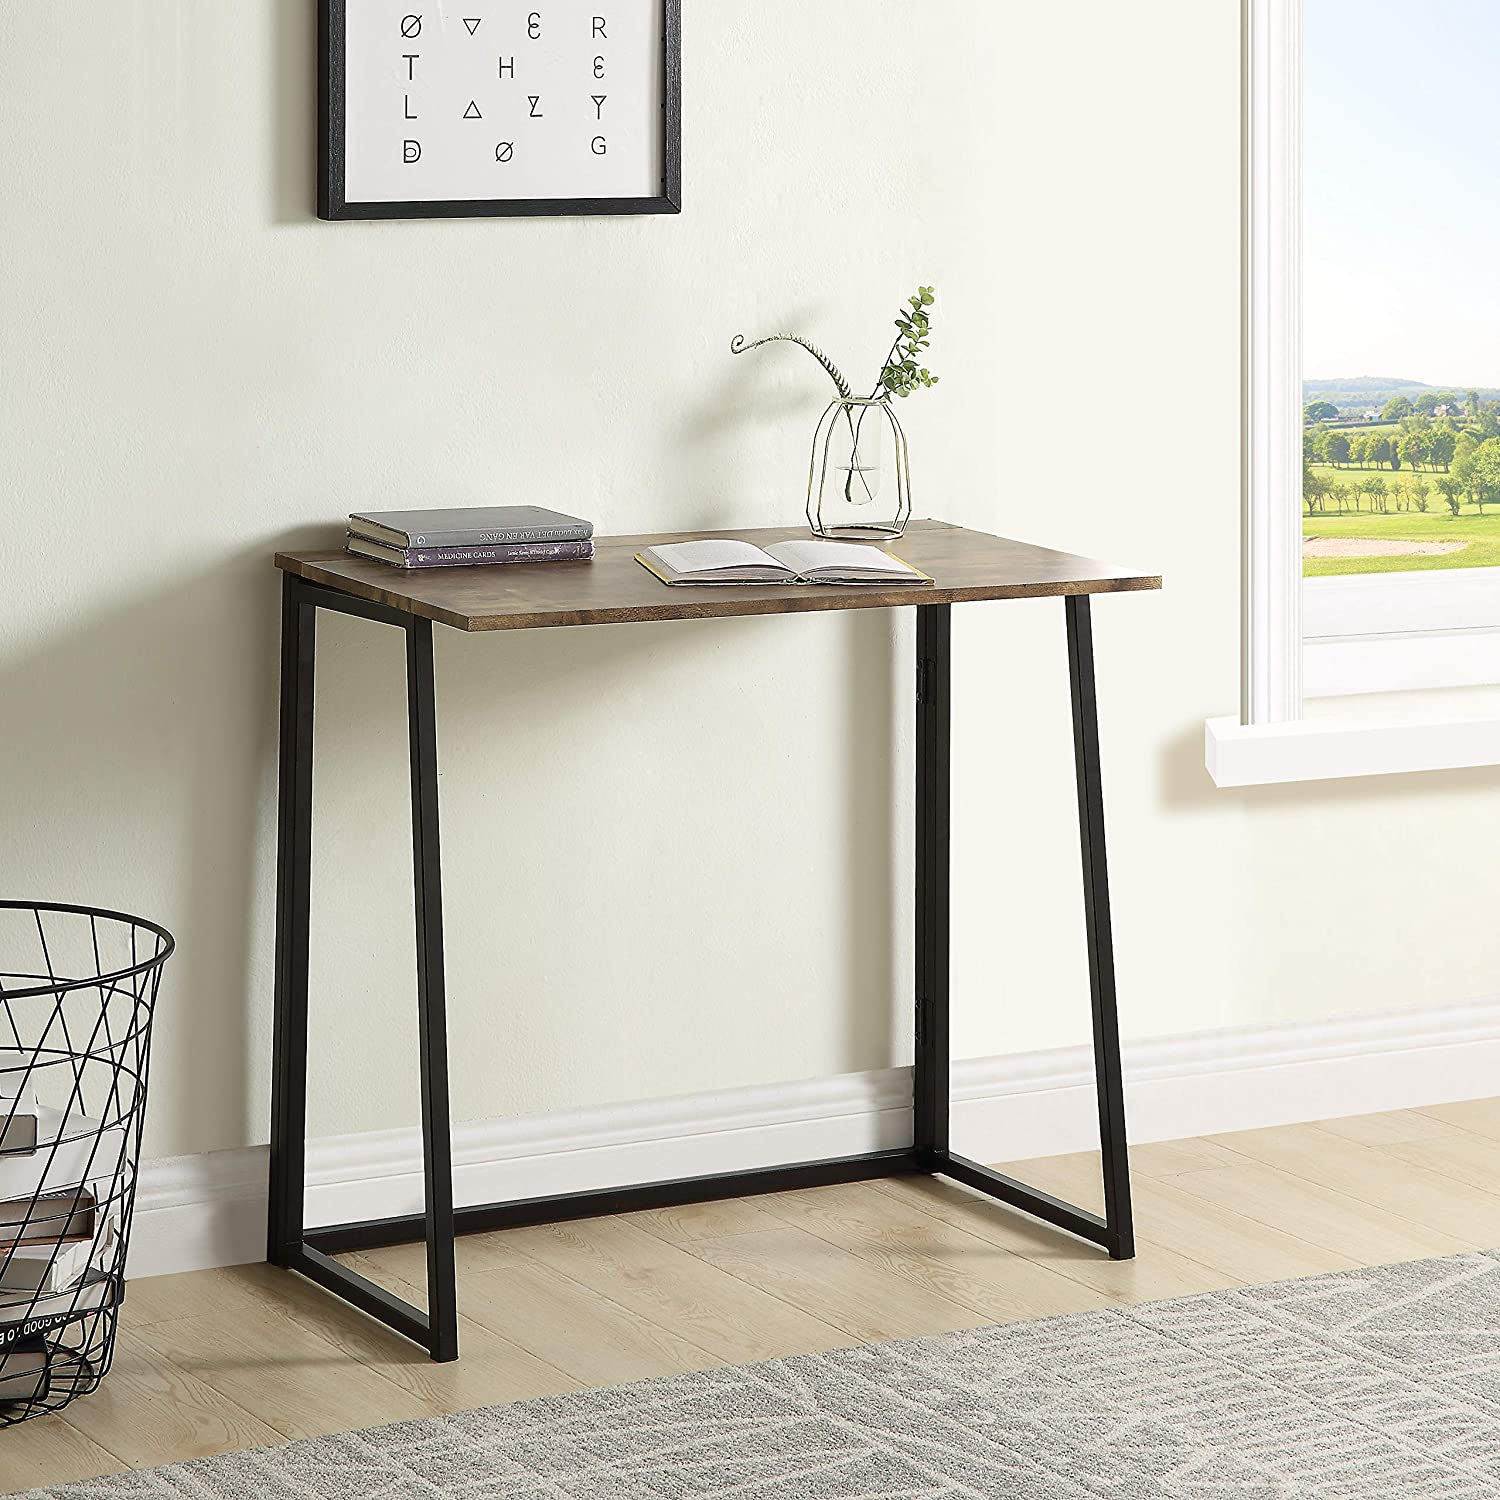 Merax Industrial Style Folding Laptop Table Space Offices,No-Assembly Small Computer Desk, 31.5